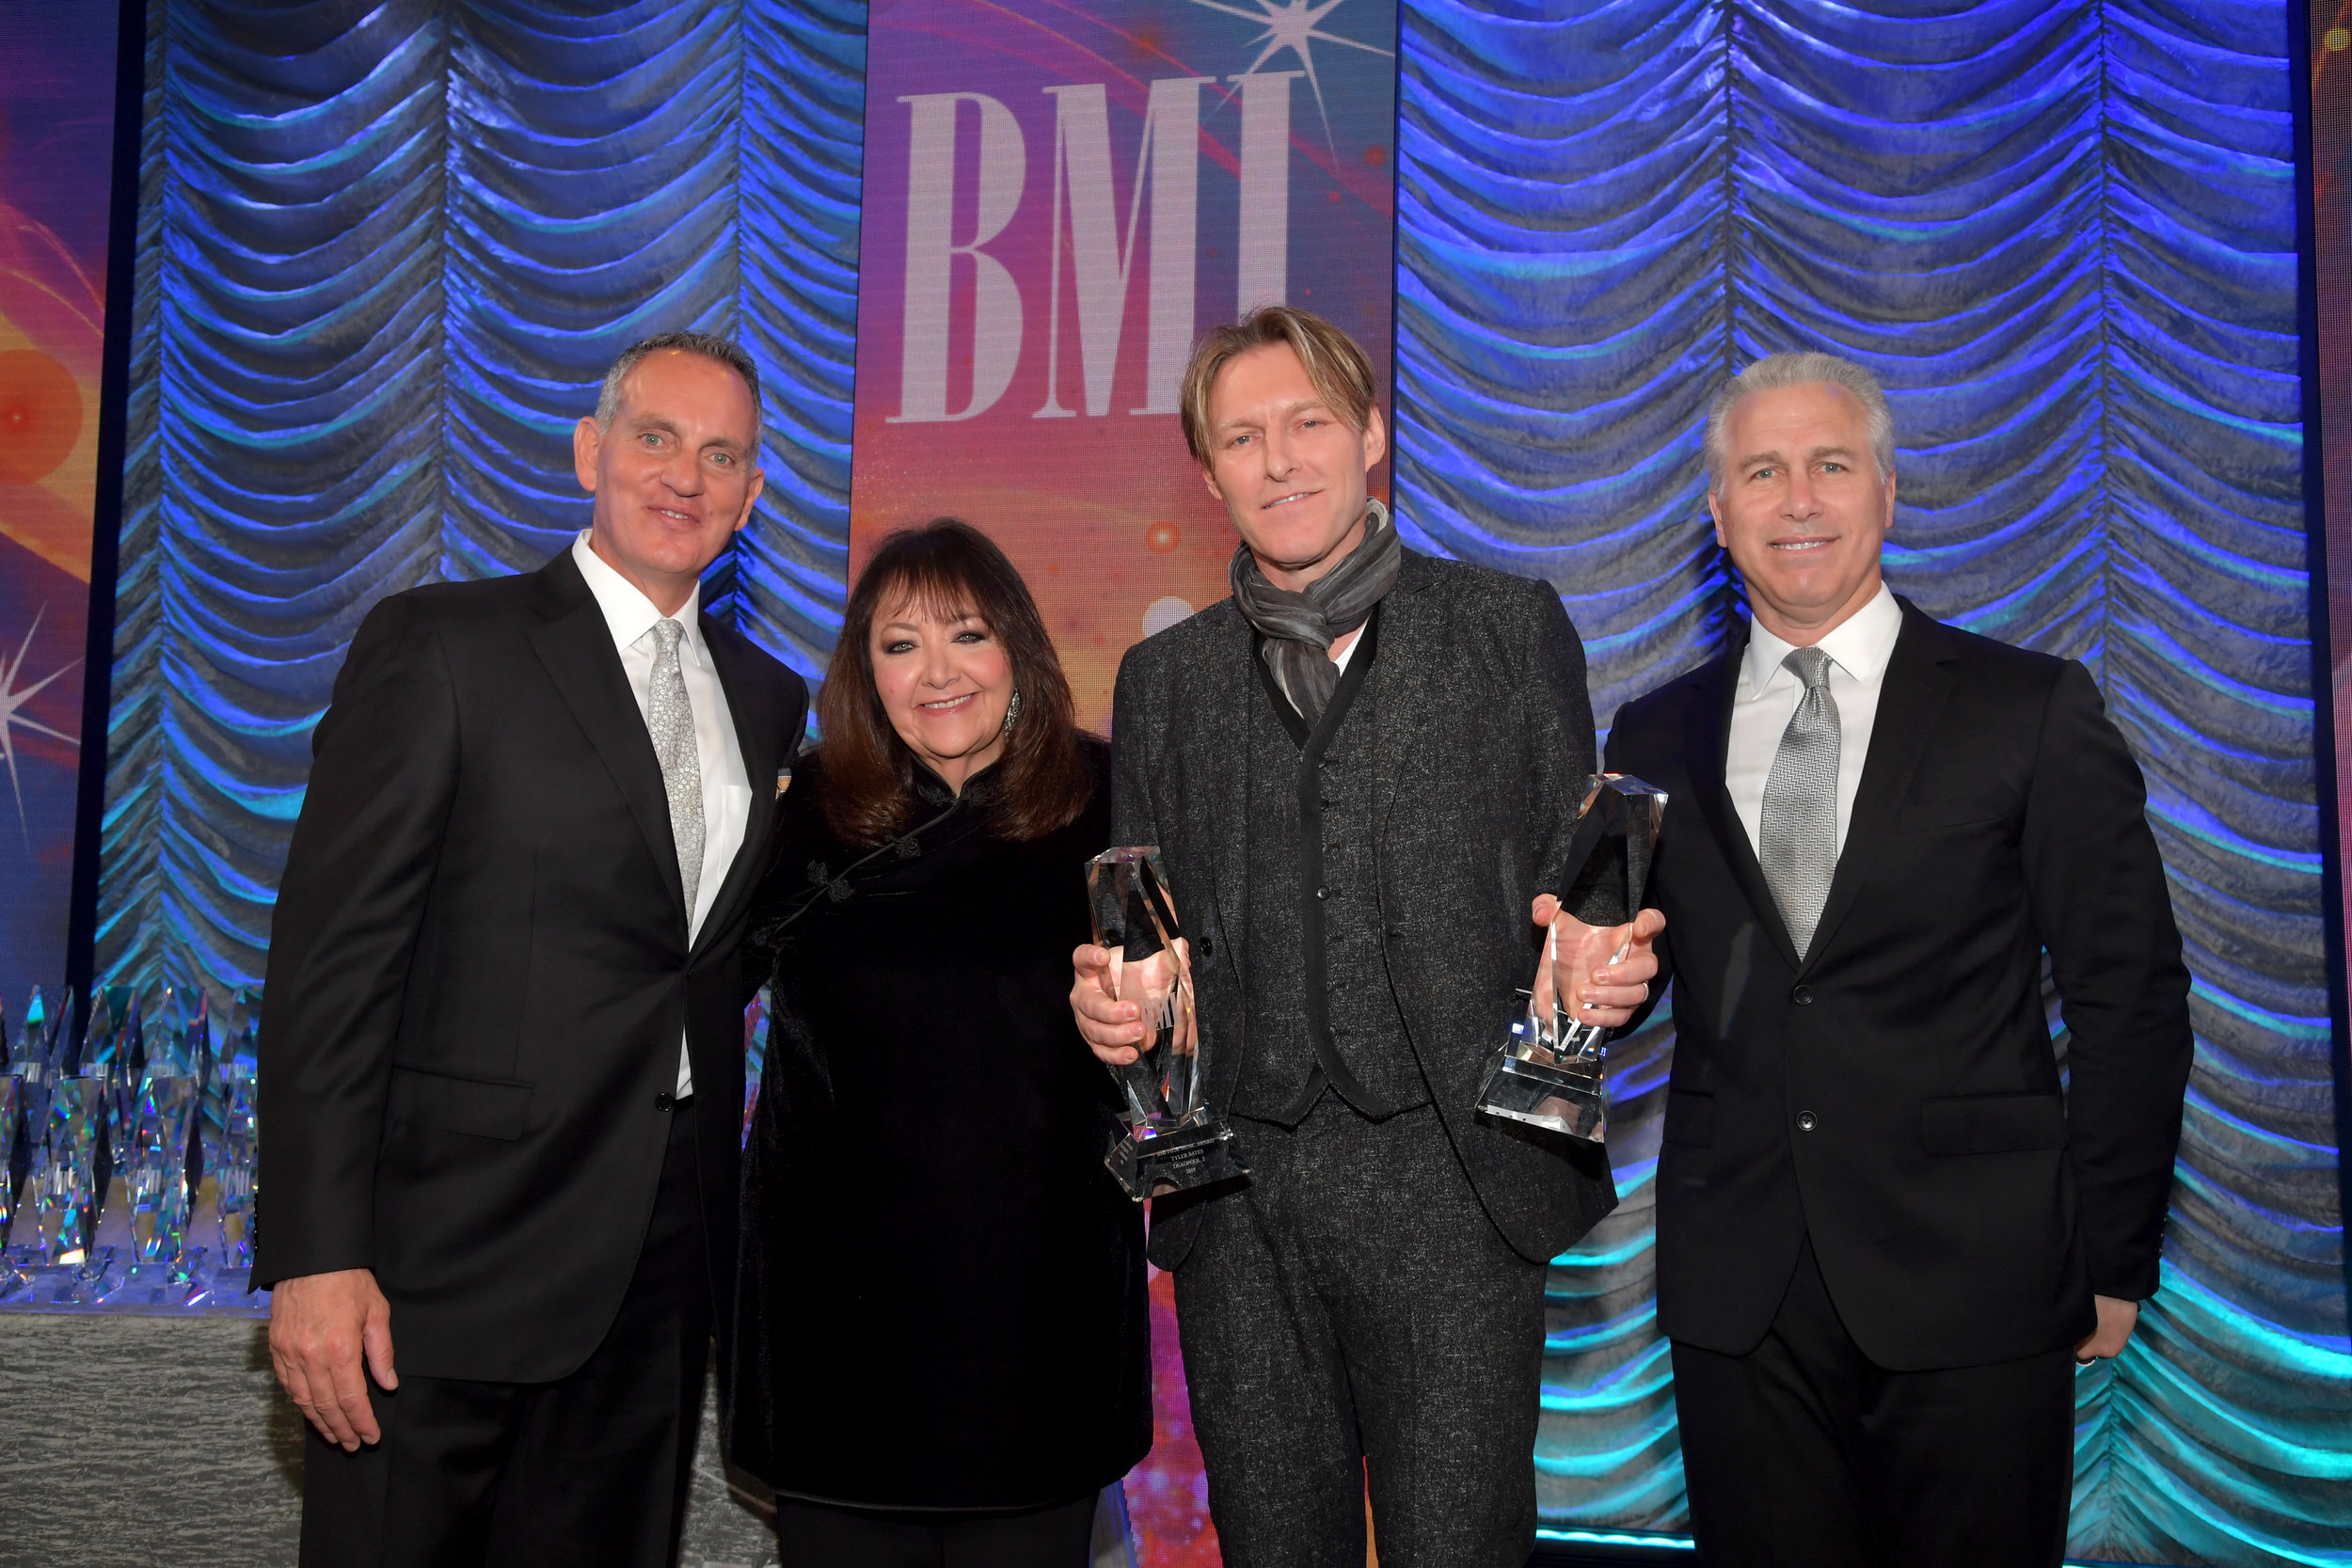 BEVERLY HILLS, CALIFORNIA - MAY 15: (L-R) BMI President & Chief Executive Officer Mike O'Neill, BMI Creative - Film, TV & Visual Media VP Doreen Ringer-Ross, Tyler Bates, and BMI Executive Vice President of Creative & Licensing Mike Steinberg pose onstage during the 35th annual BMI Film, TV & Visual Media Awards on May 15, 2019 in Beverly Hills, California. (Photo by Lester Cohen/Getty Images for BMI)